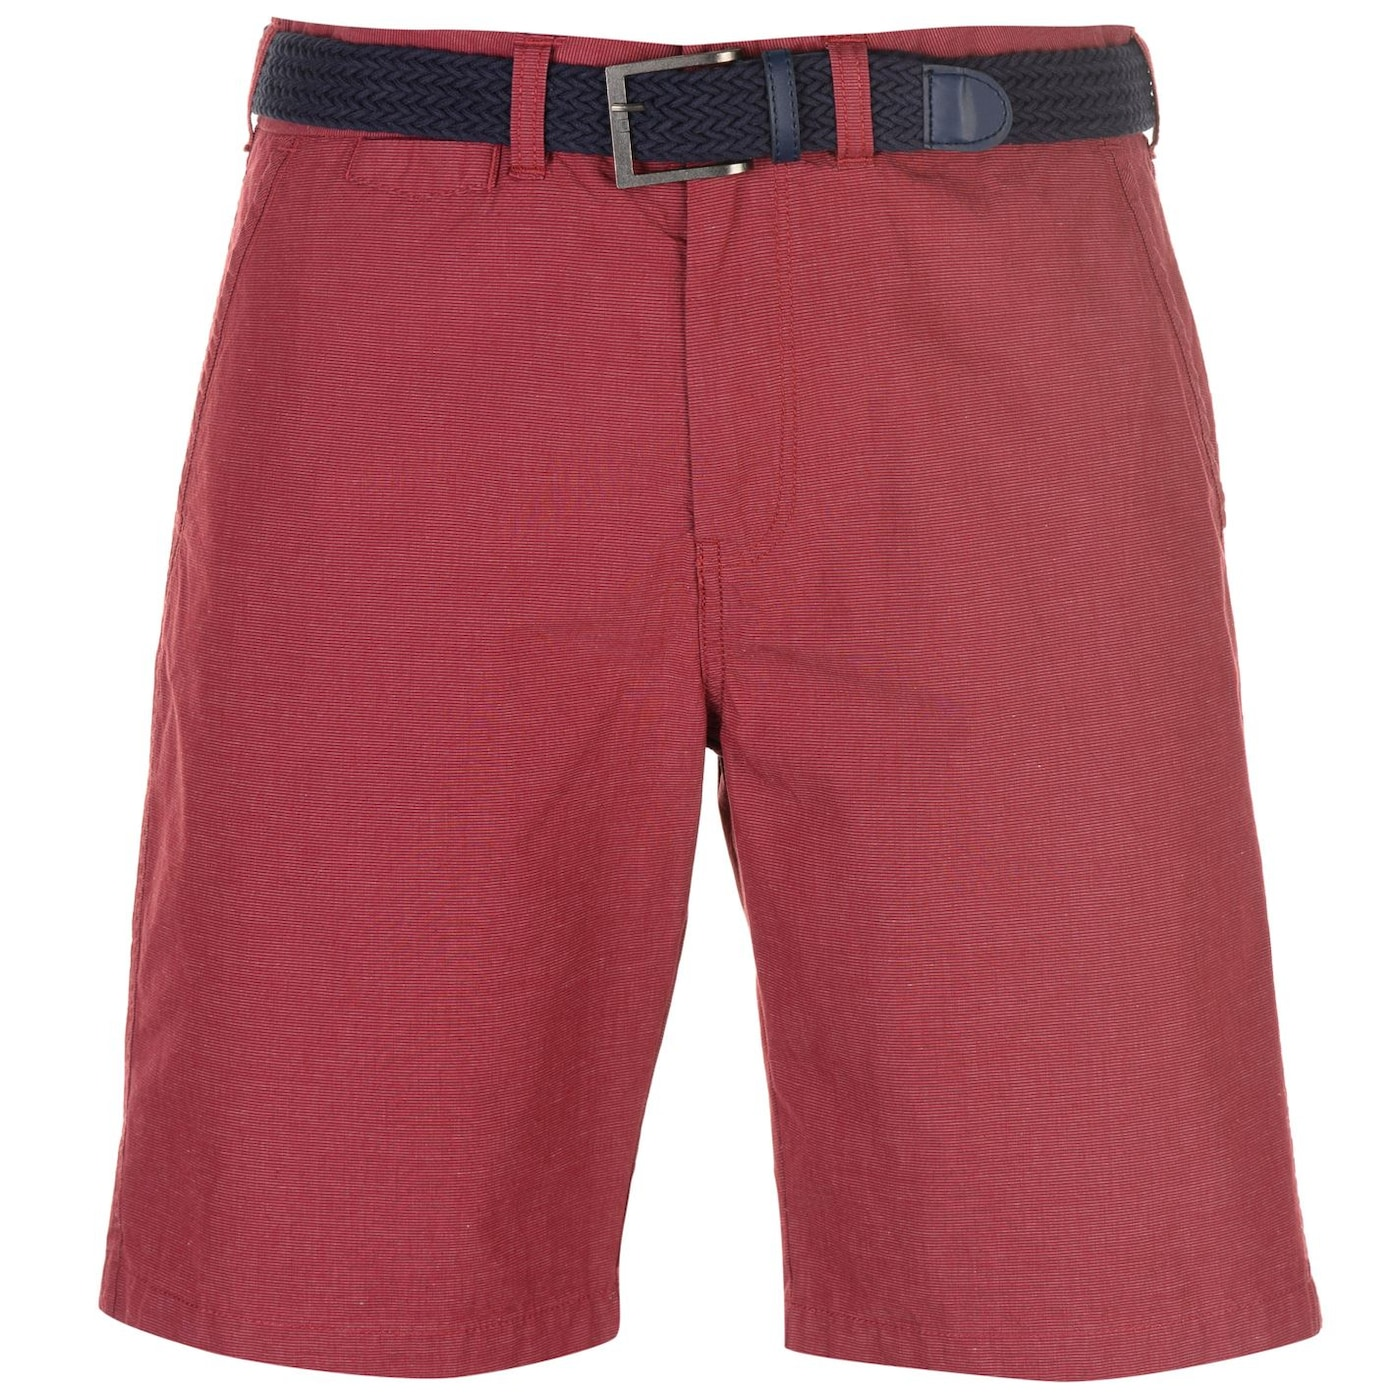 Pierre Cardin YD Belted Chino Shorts Mens